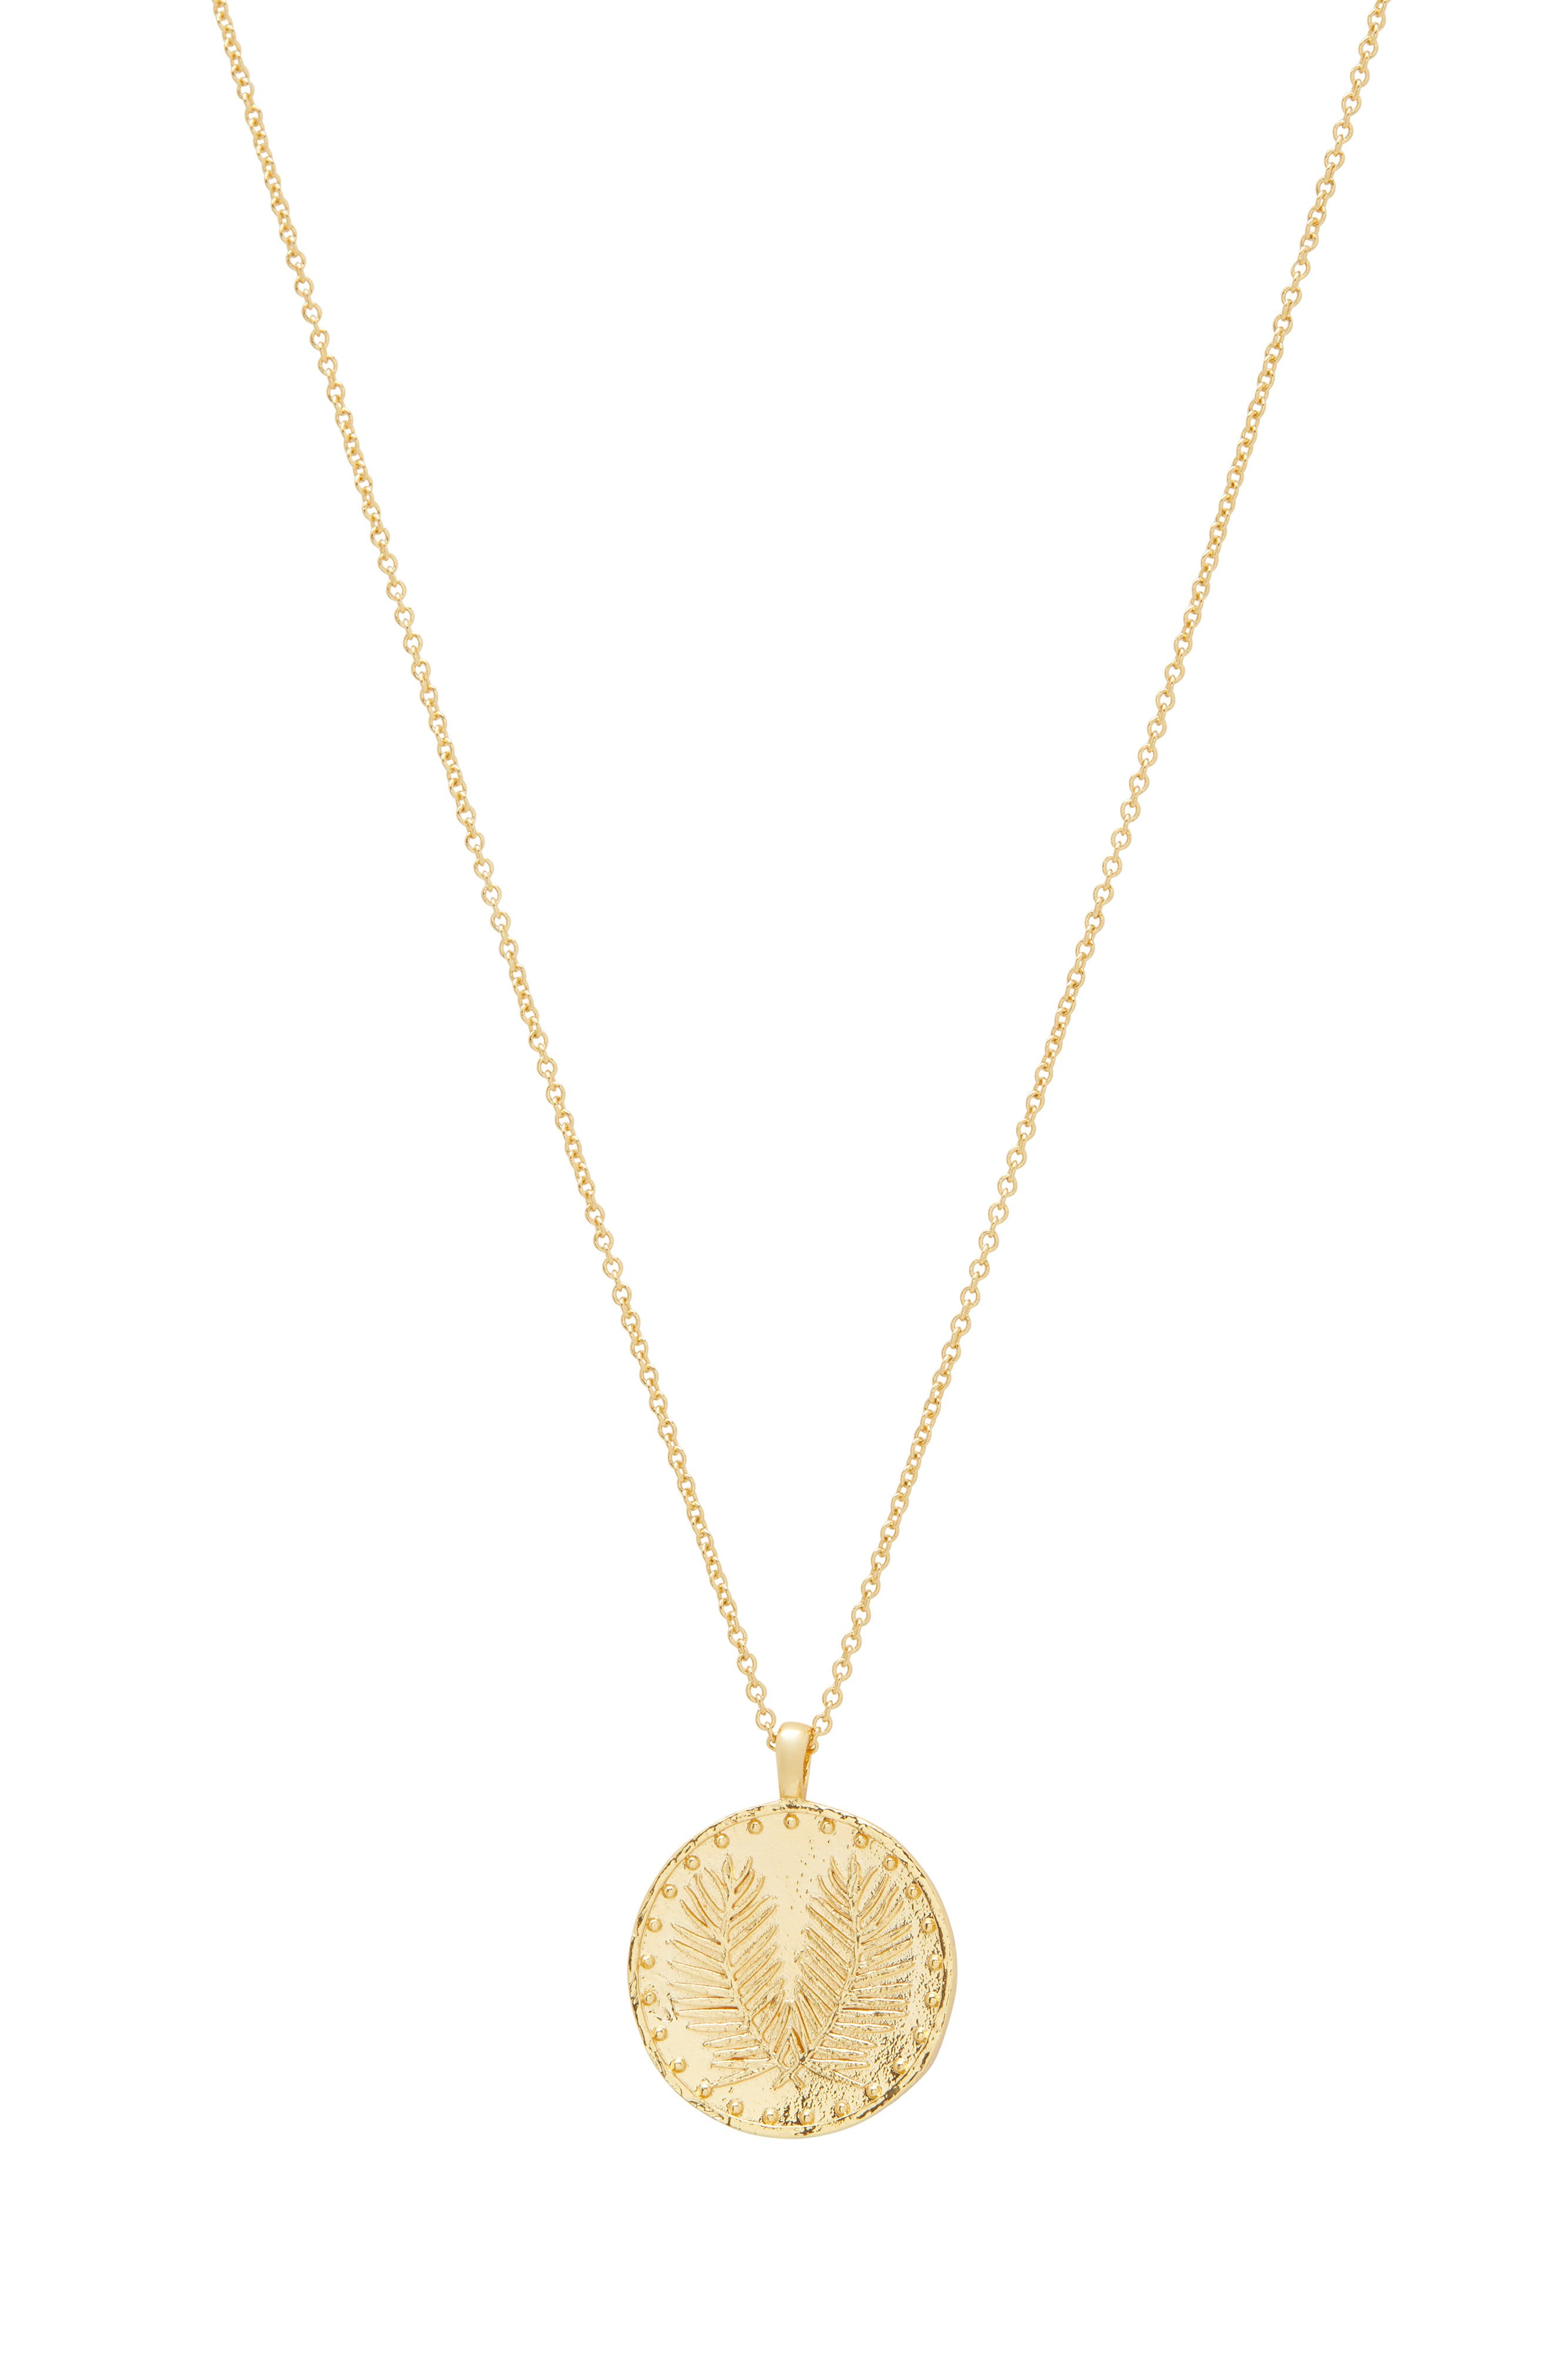 Raised palm-frond detailing adds to the striking found-object aesthetic of an adjustable coin-pendant necklace plated in 18-karat gold. Style Name: Gorjana Palm Coin Pendant Necklace. Style Number: 5783256. Available in stores.